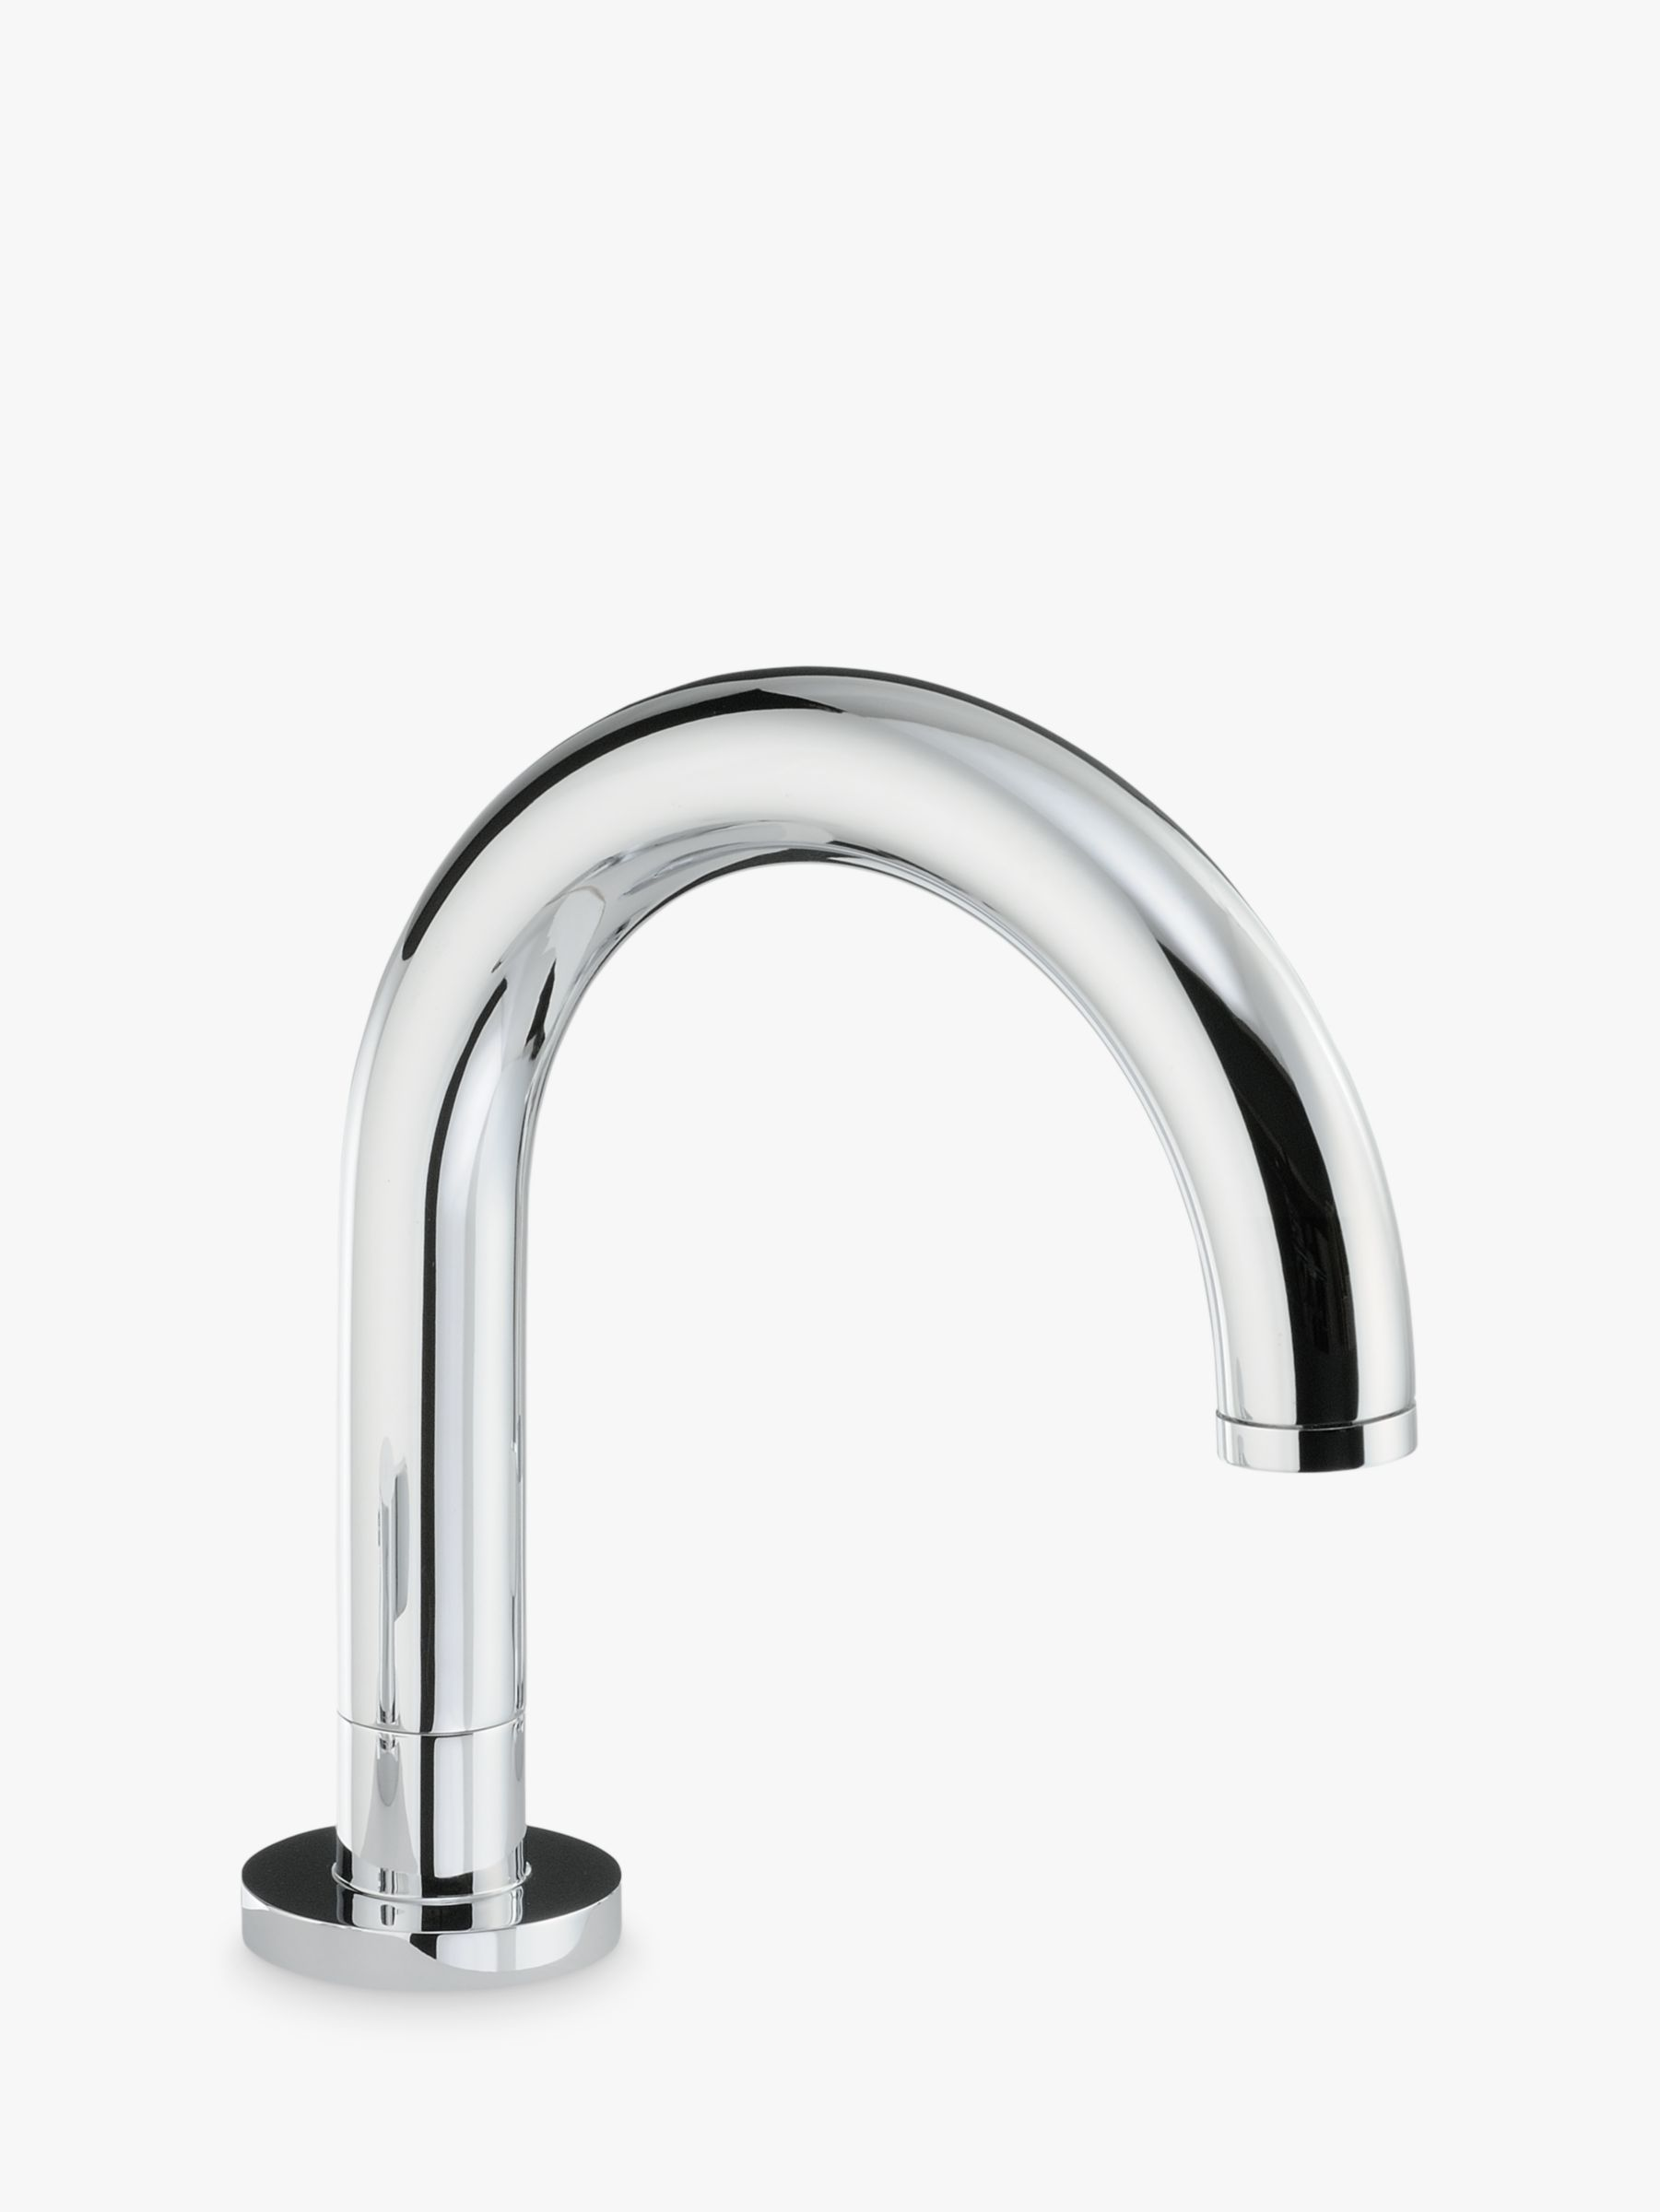 Abode Deck Mounted Bathroom Spout Tap, Round Base